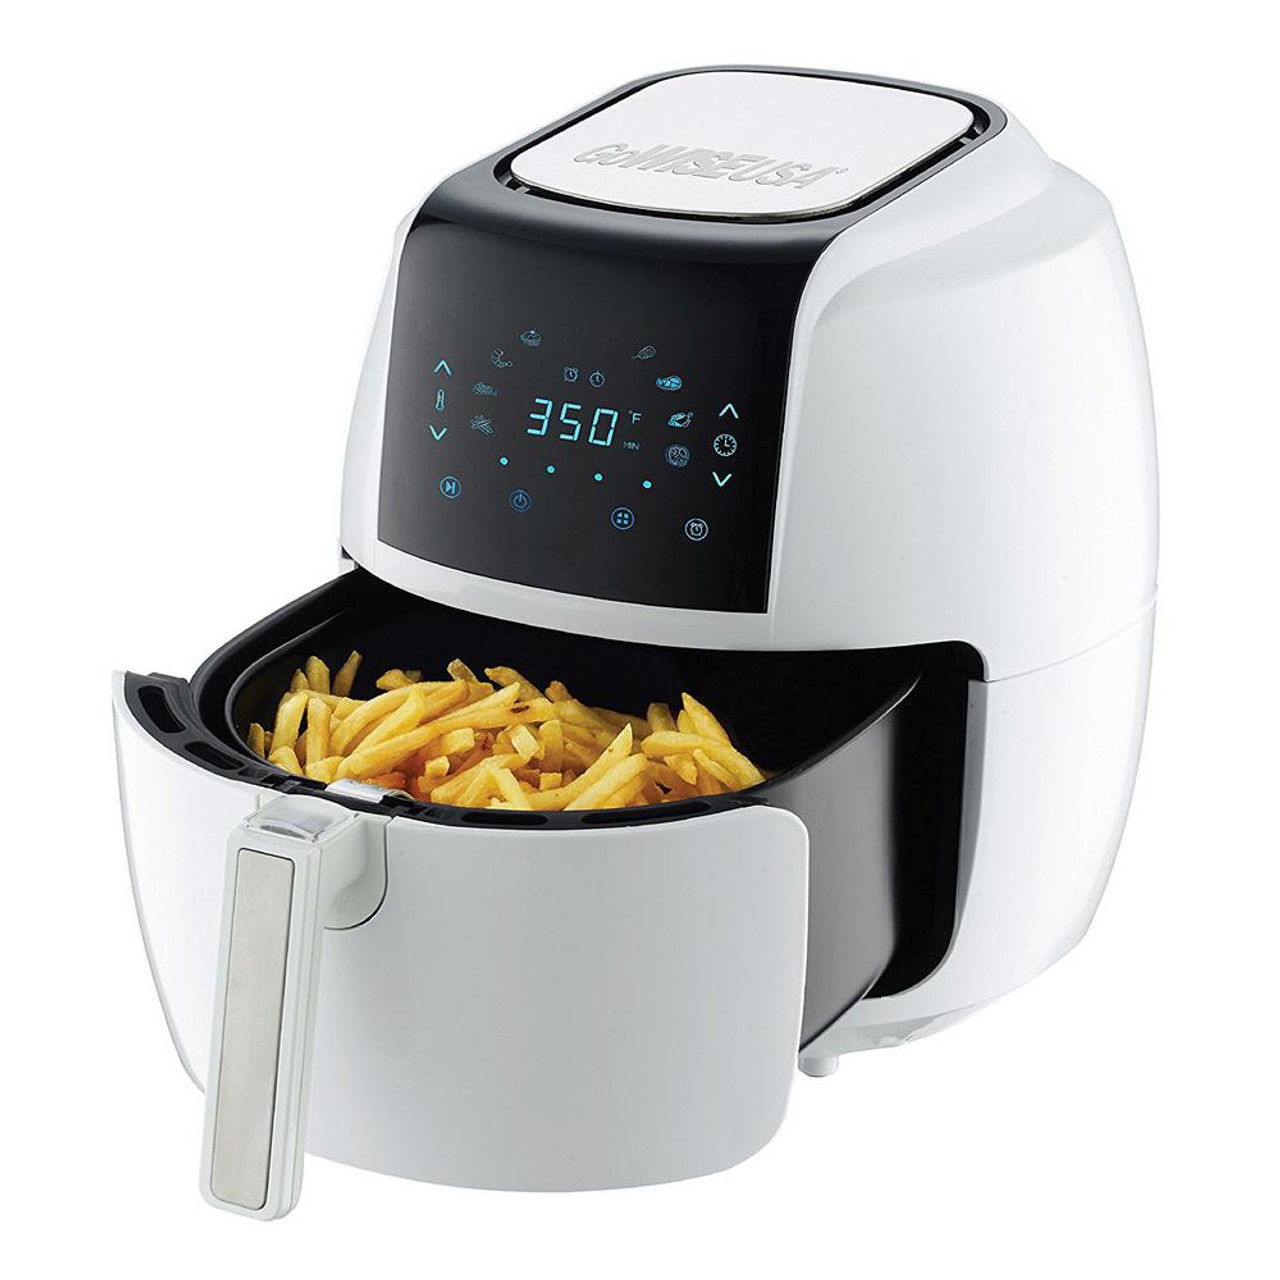 GoWISE GW22735 5.8-QT 8-in-1 Electric Air Fryer - White